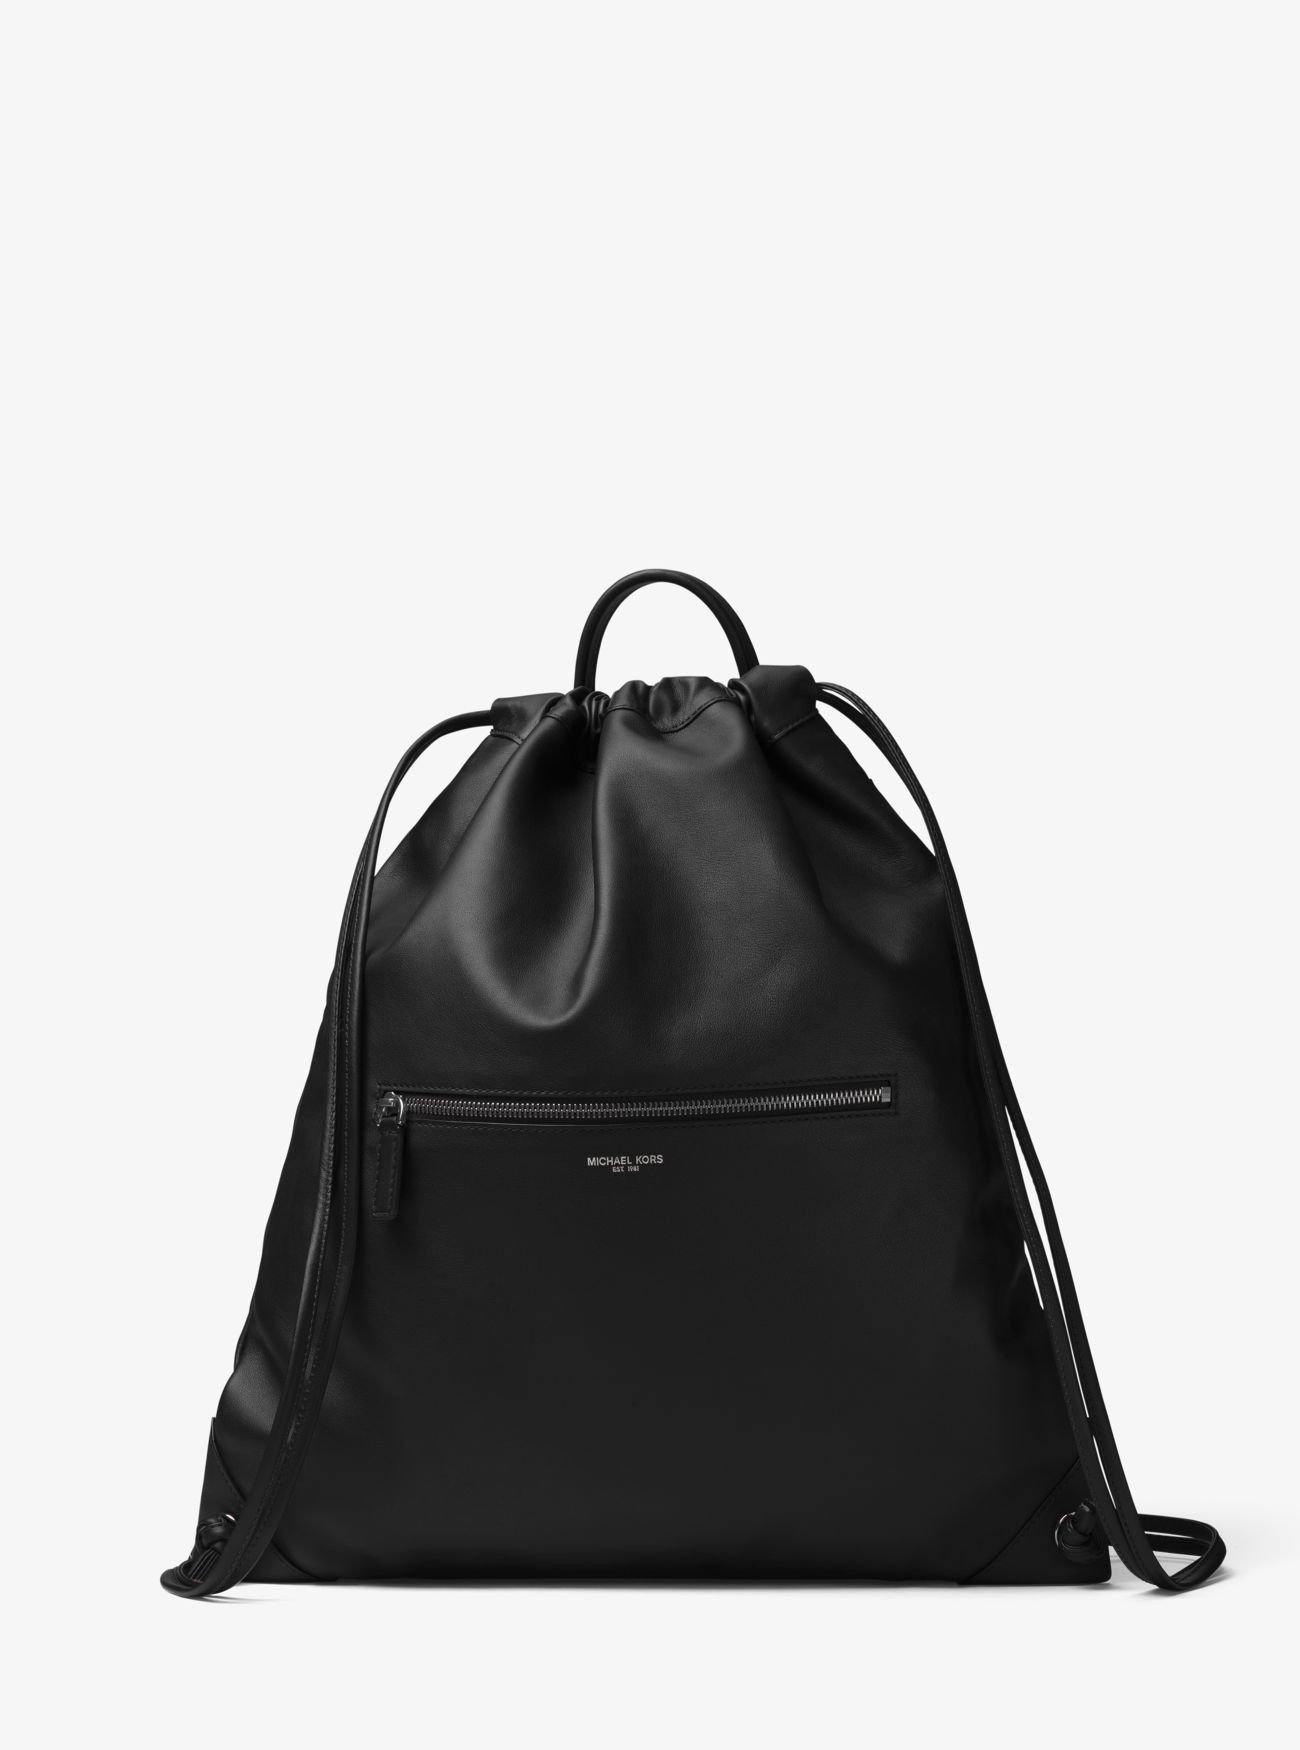 f039b4b4fac5 MICHAEL KORS Dylan Leather Drawstring Backpack. #michaelkors #bags #leather  #lining #polyester #backpacks #cotton #